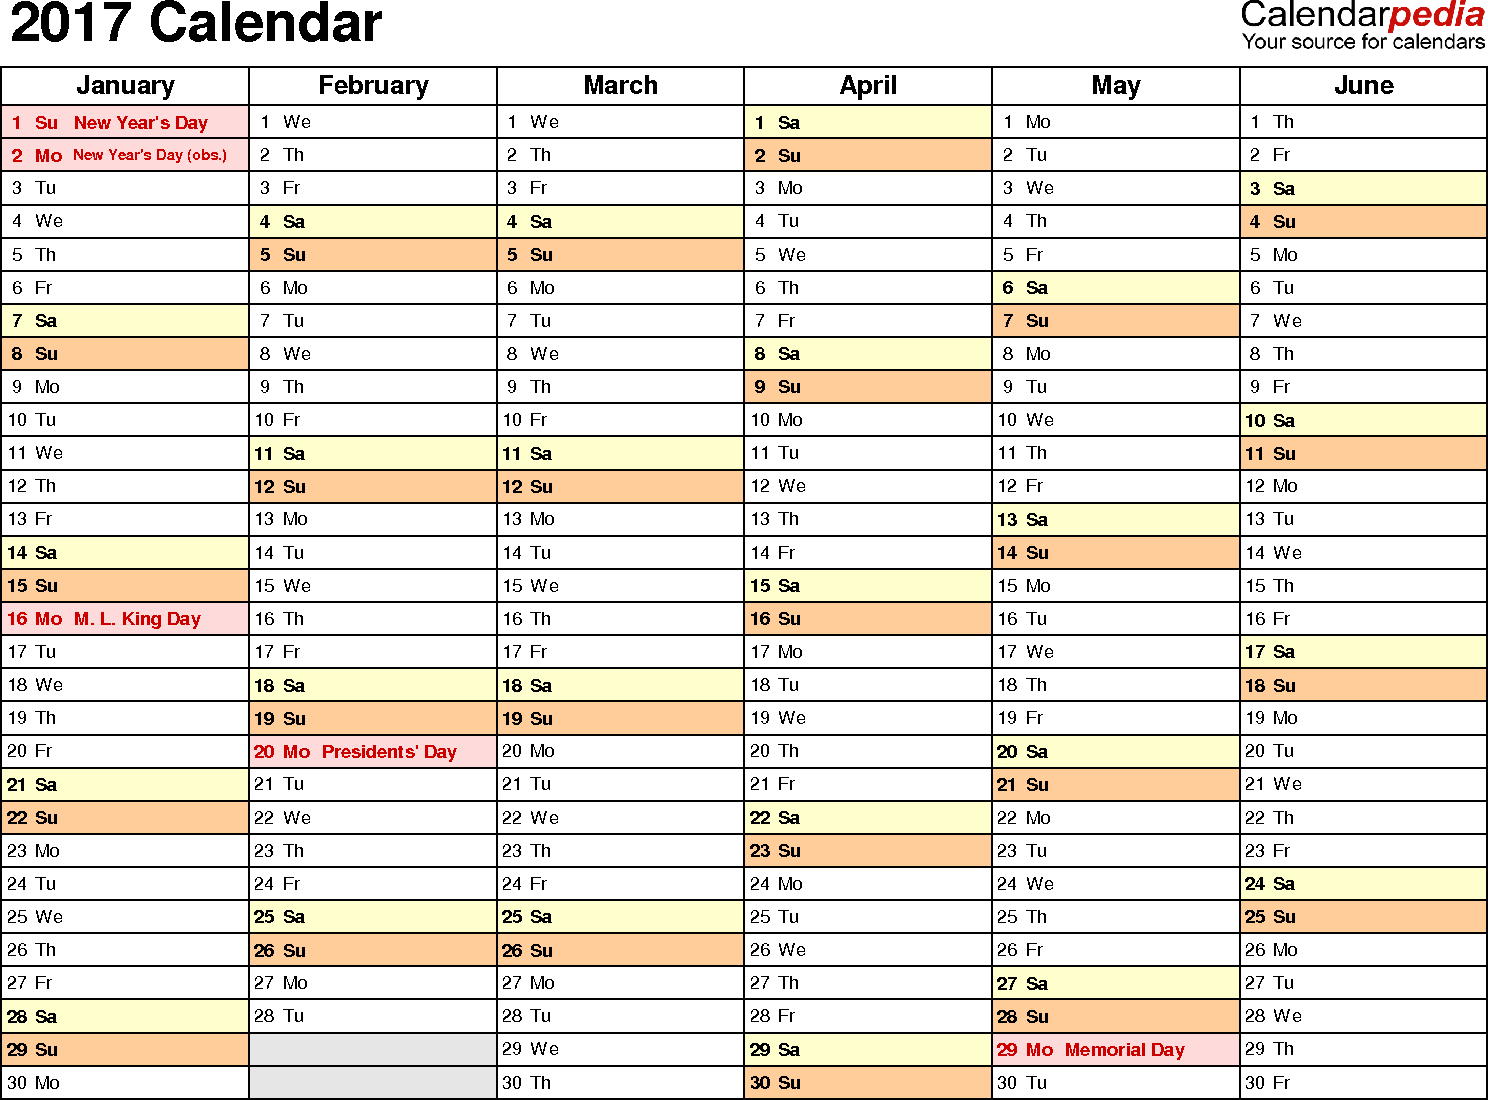 Ediblewildsus  Prepossessing  Calendar Excel  My Cms With Licious Template   Calendar For With Extraordinary Combine Rows Excel Also Cheer Excel In Addition Joining Tables In Excel And Minus Sign In Excel As Well As Standard Operating Procedure Template Excel Additionally Troubleshooting Excel From Abefendicafecom With Ediblewildsus  Licious  Calendar Excel  My Cms With Extraordinary Template   Calendar For And Prepossessing Combine Rows Excel Also Cheer Excel In Addition Joining Tables In Excel From Abefendicafecom